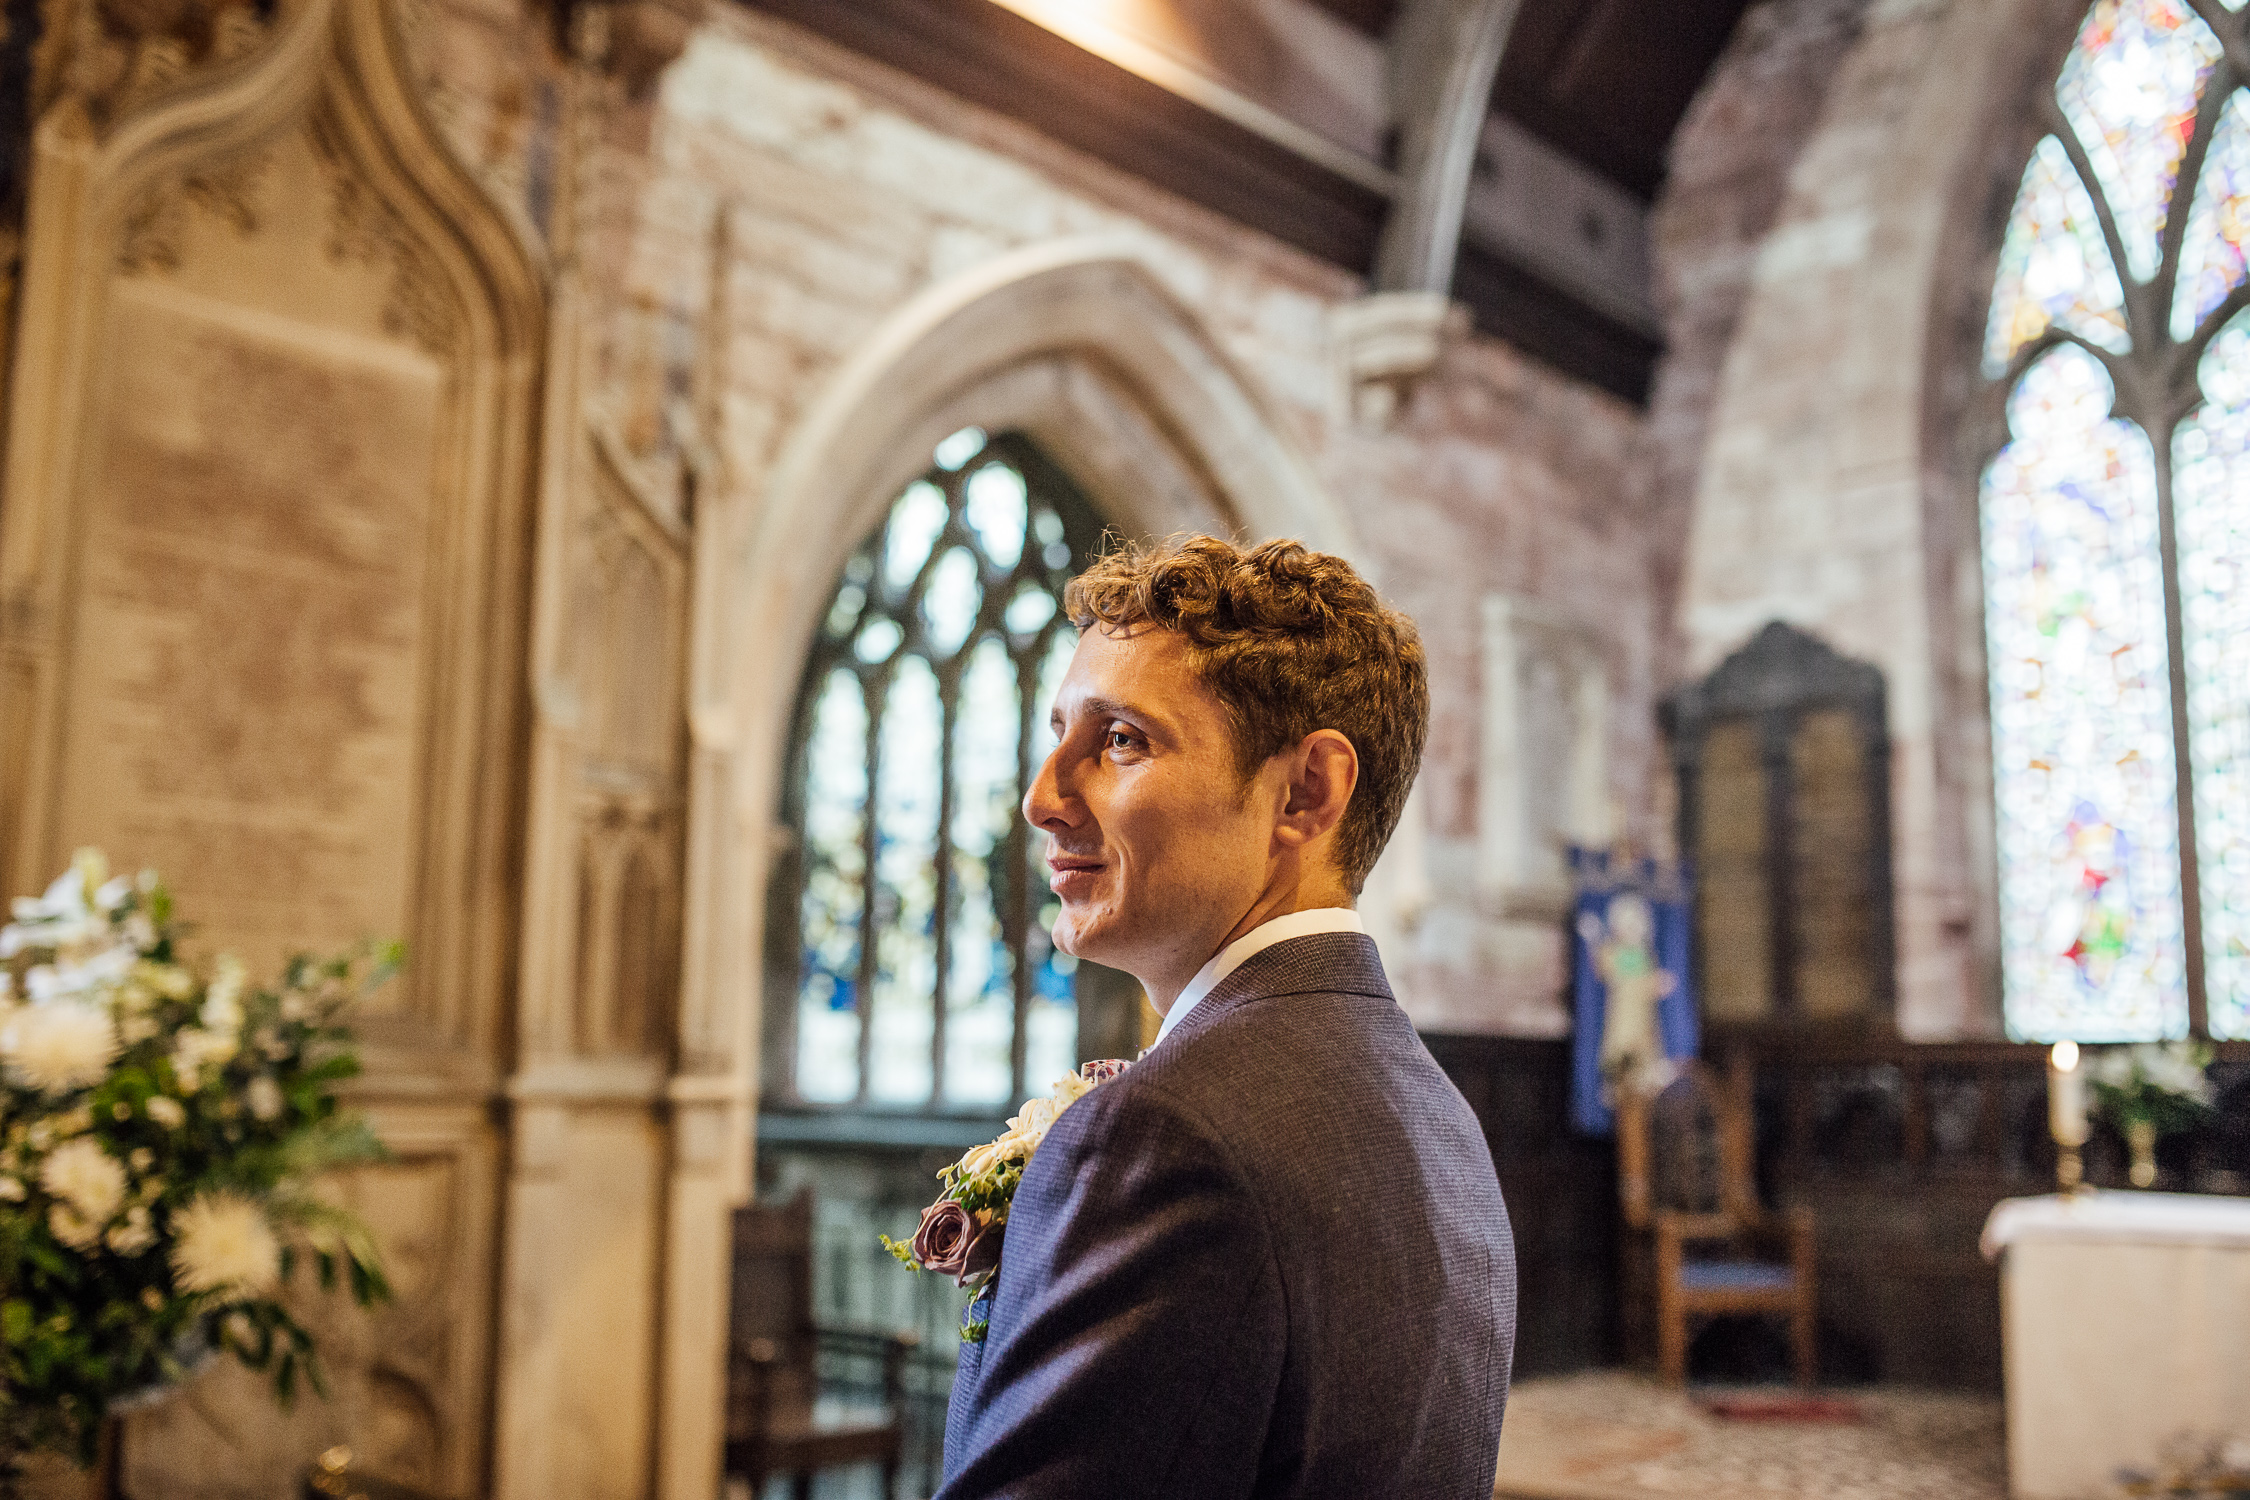 SHREWSBURY_WEDDING_PHOTOGRAPHER-29.jpg